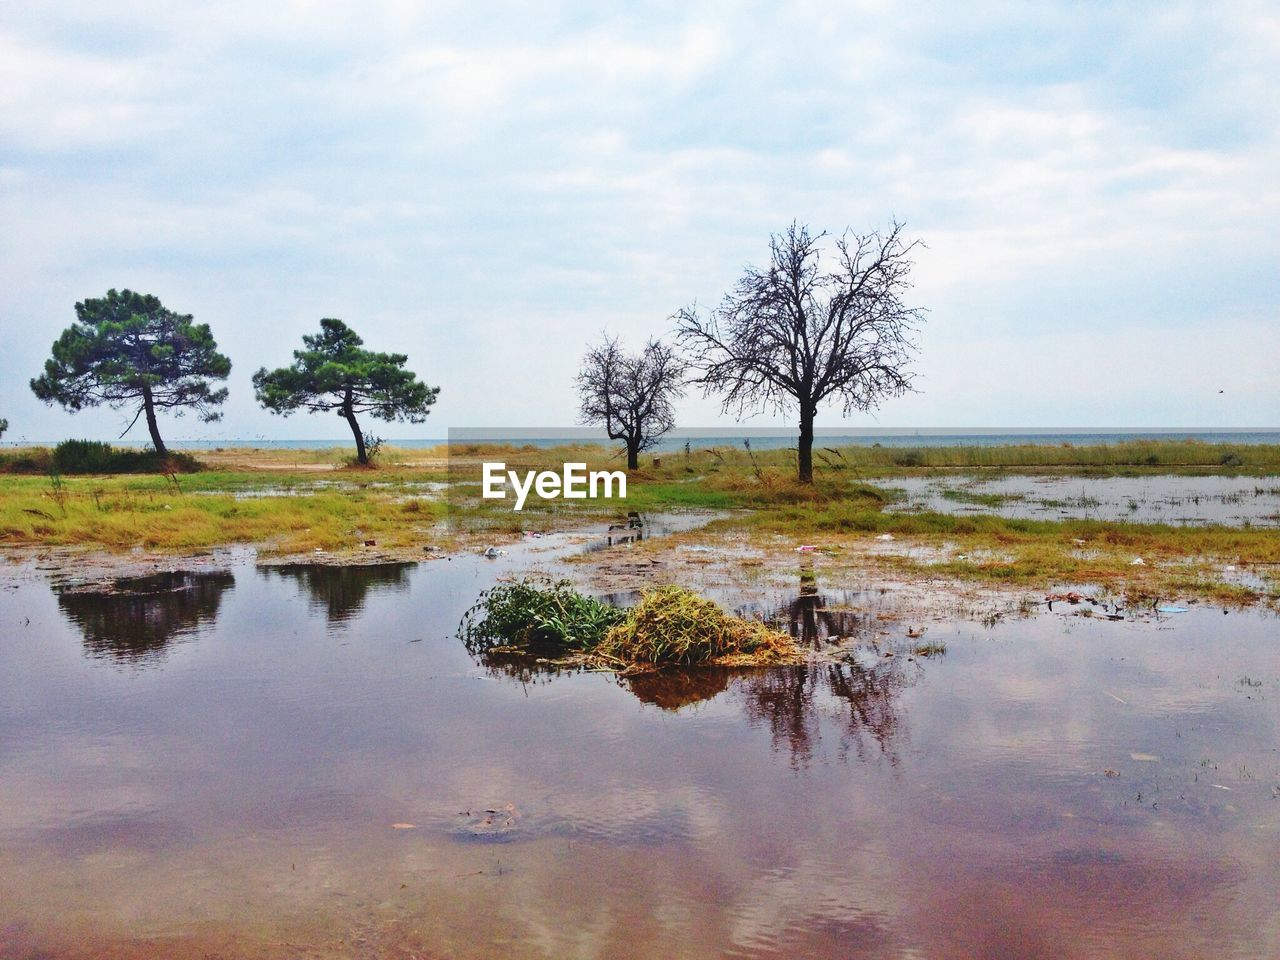 tree, reflection, tranquility, nature, water, tranquil scene, landscape, remote, sky, beauty in nature, outdoors, scenics, lake, no people, lone, day, branch, grass